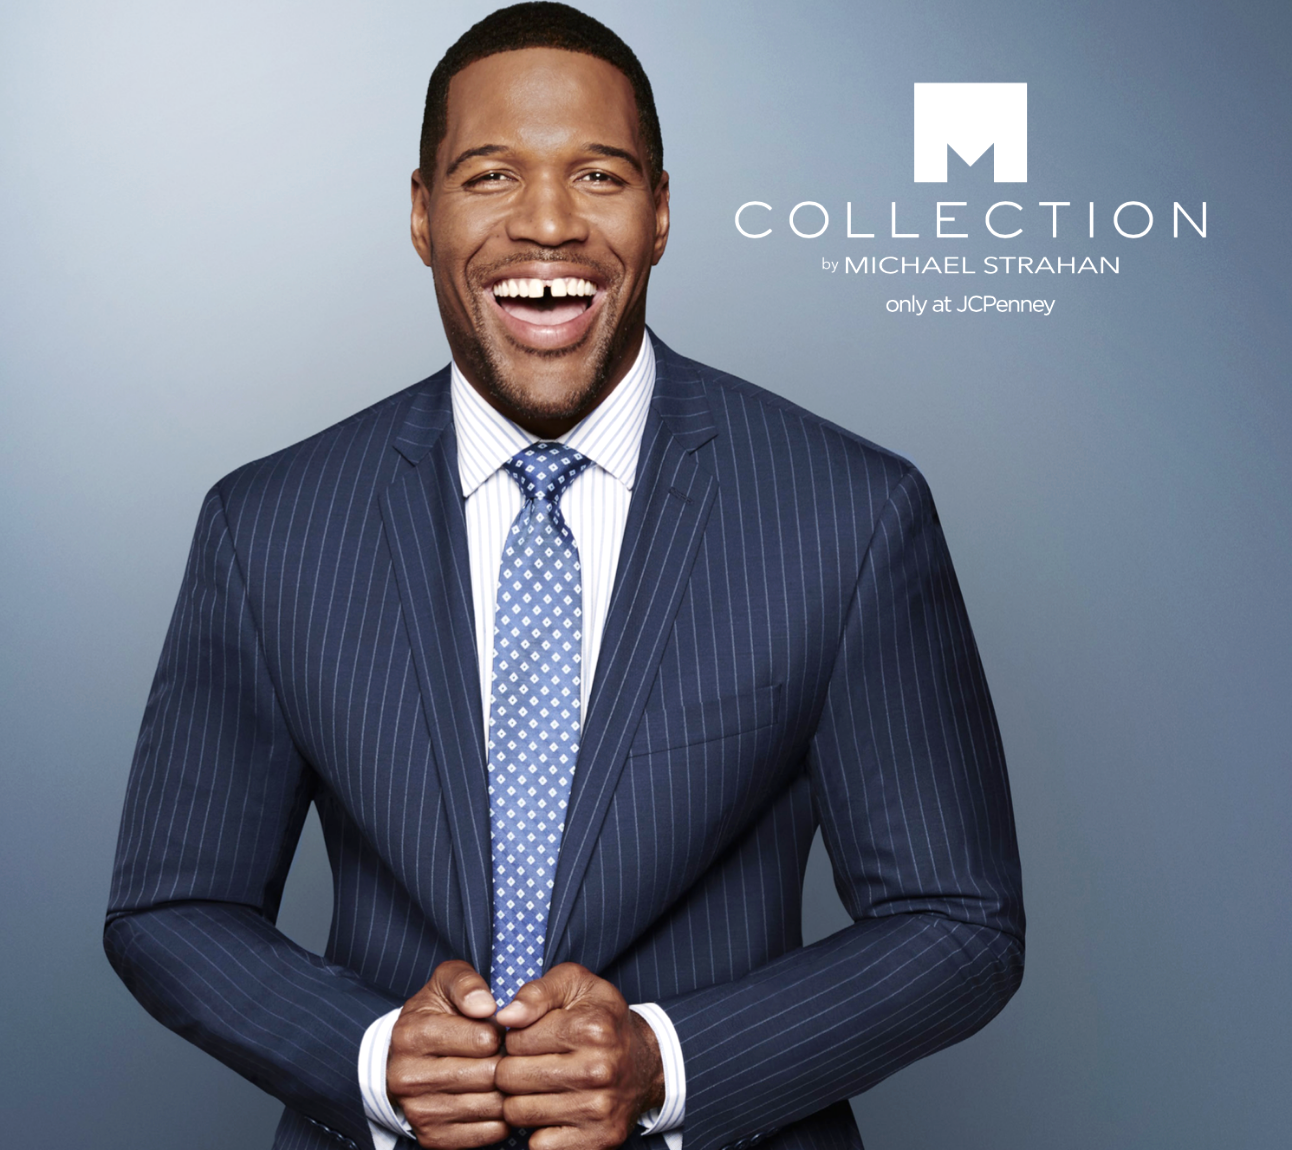 michael+strahan.png